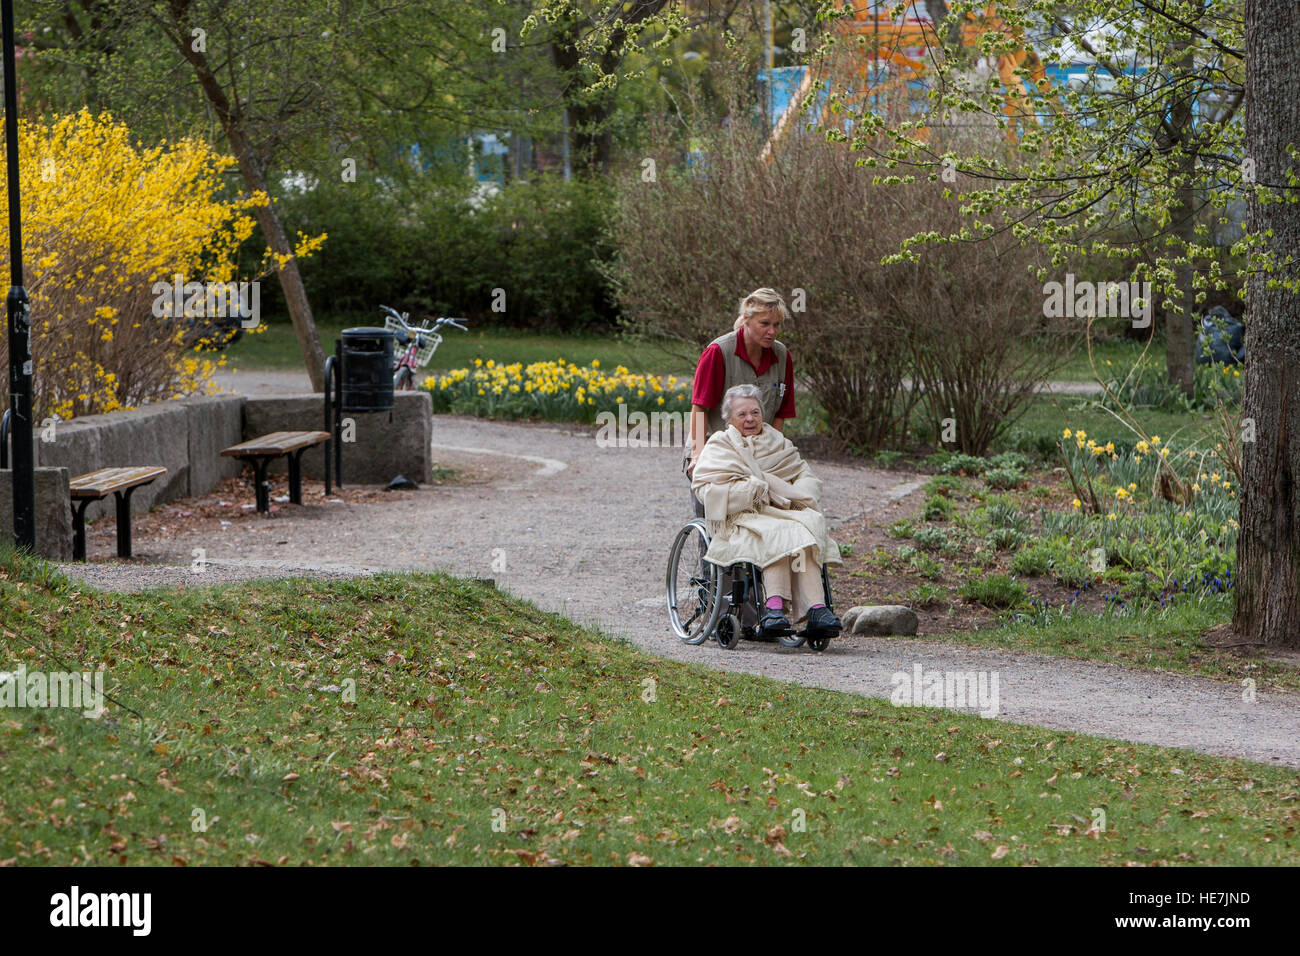 Elderly woman being helped by personal with outdoor access. - Stock Image